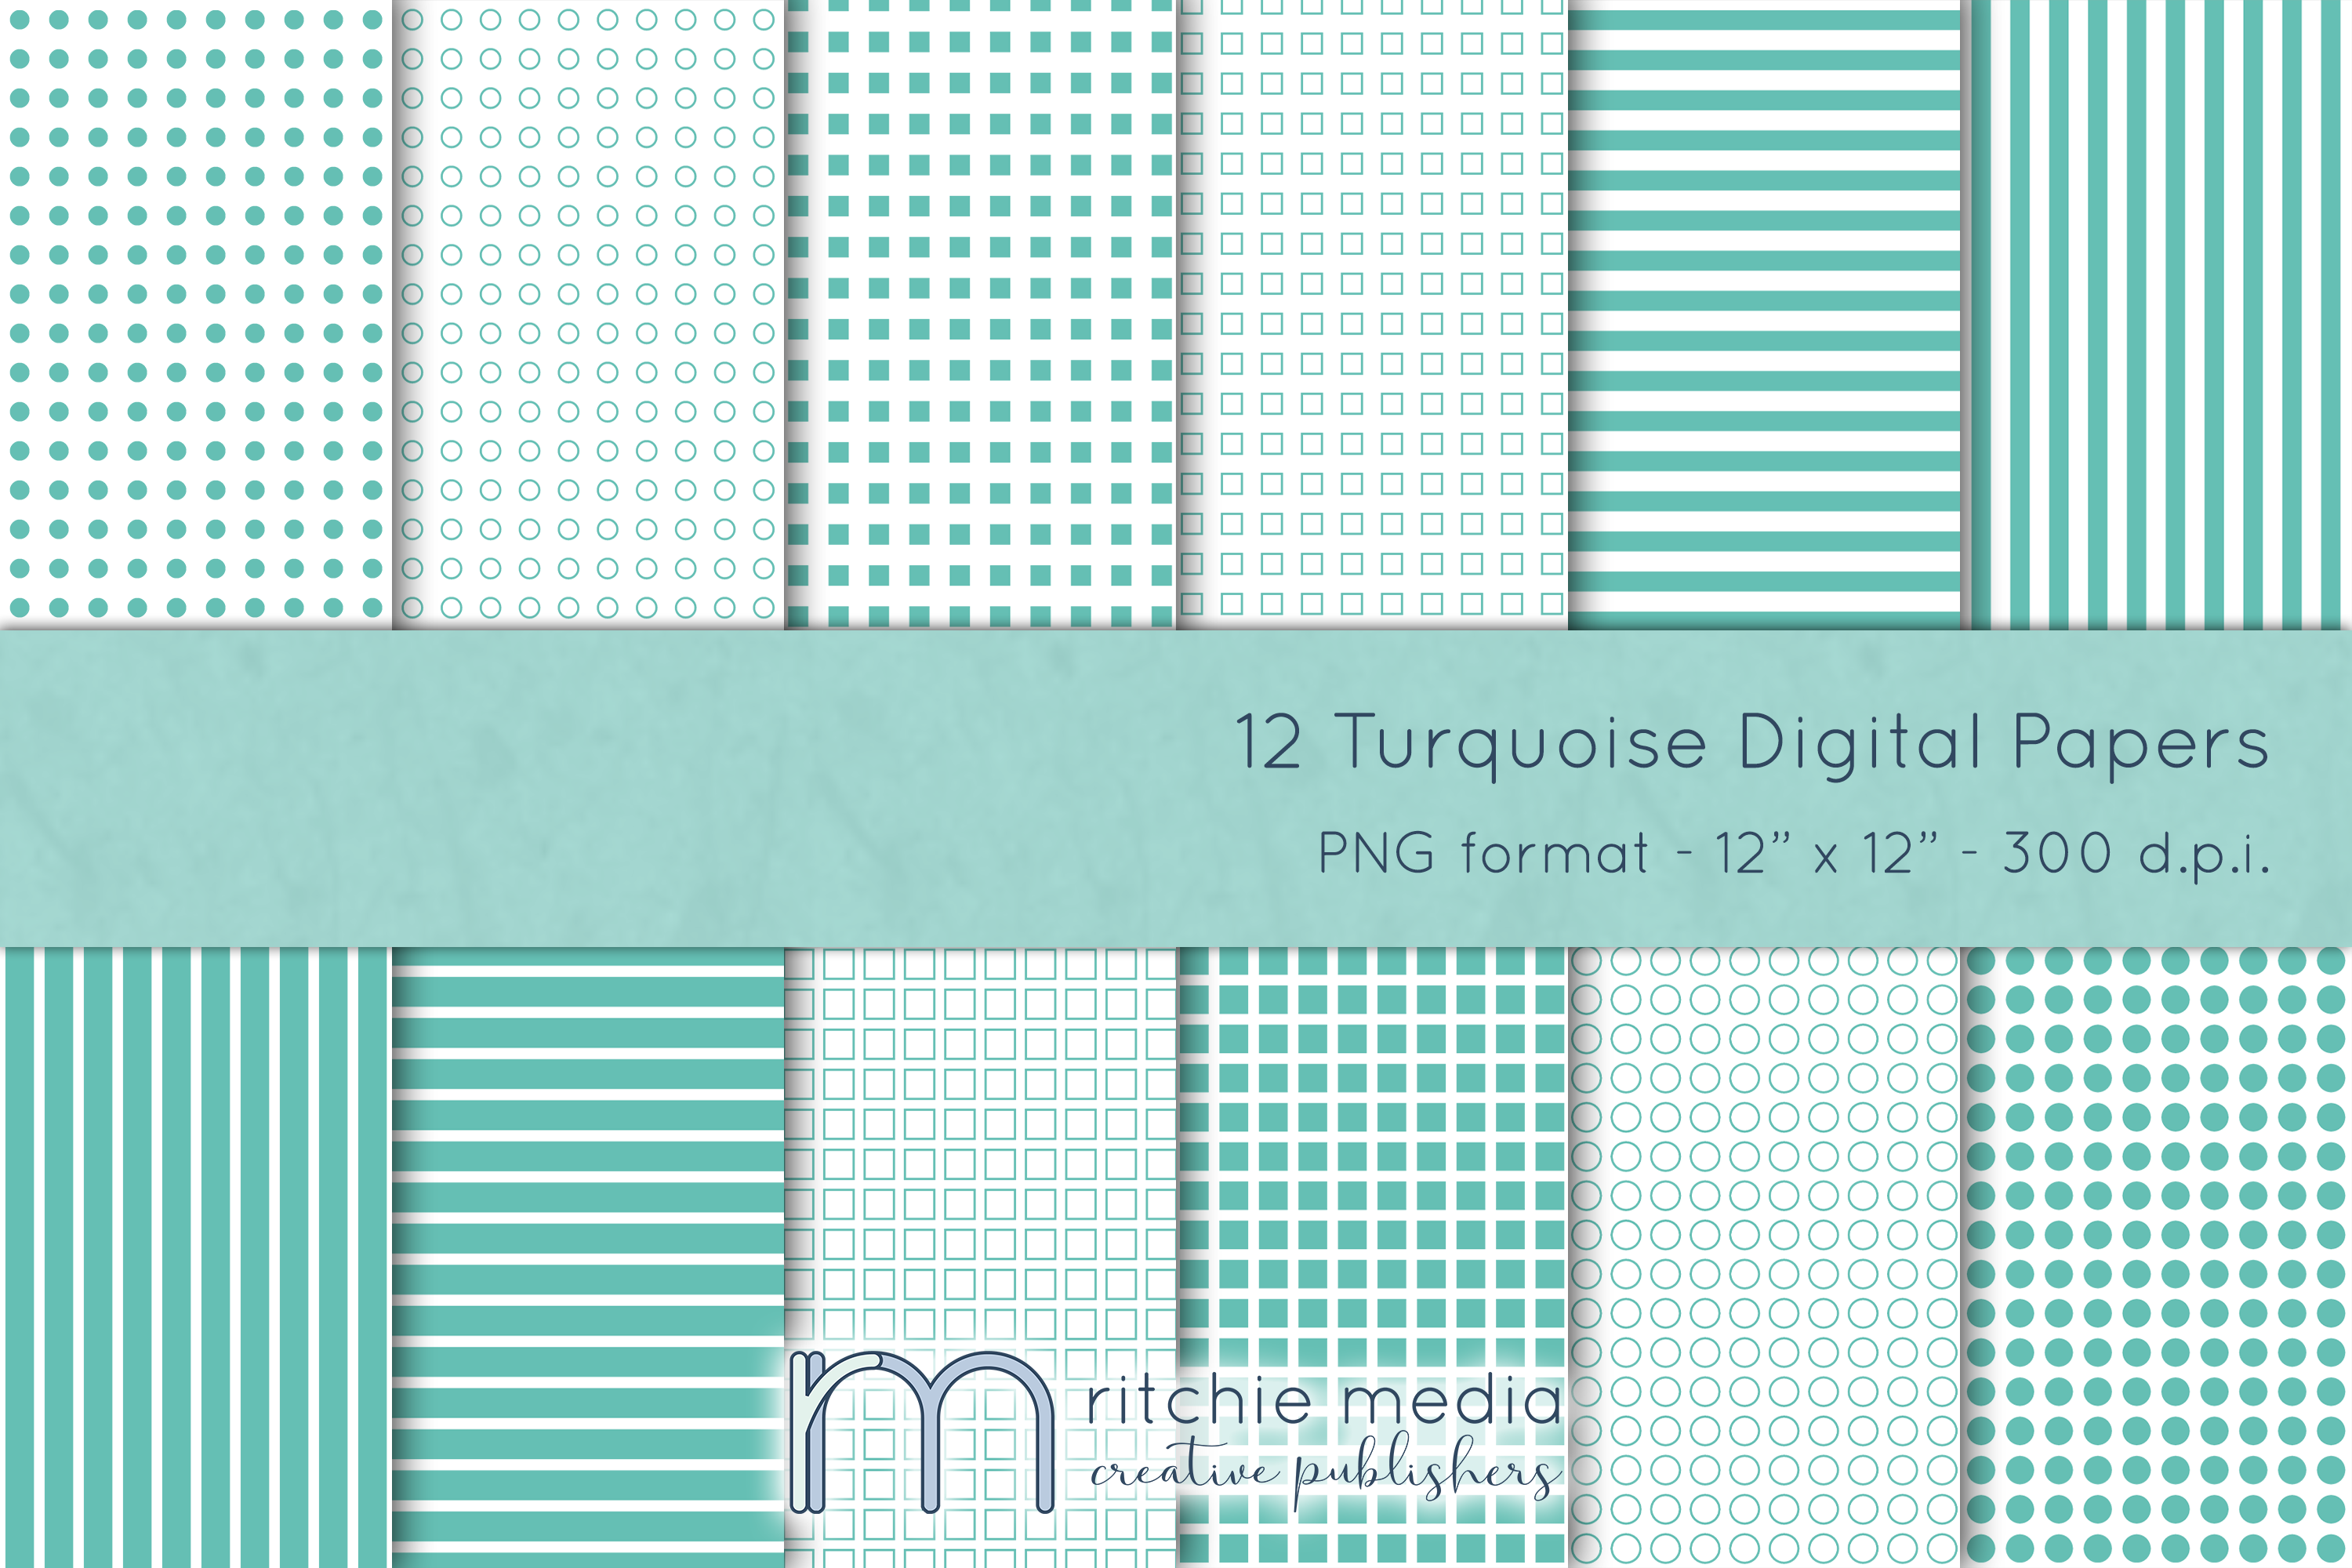 12 turquoise digital papers mockup